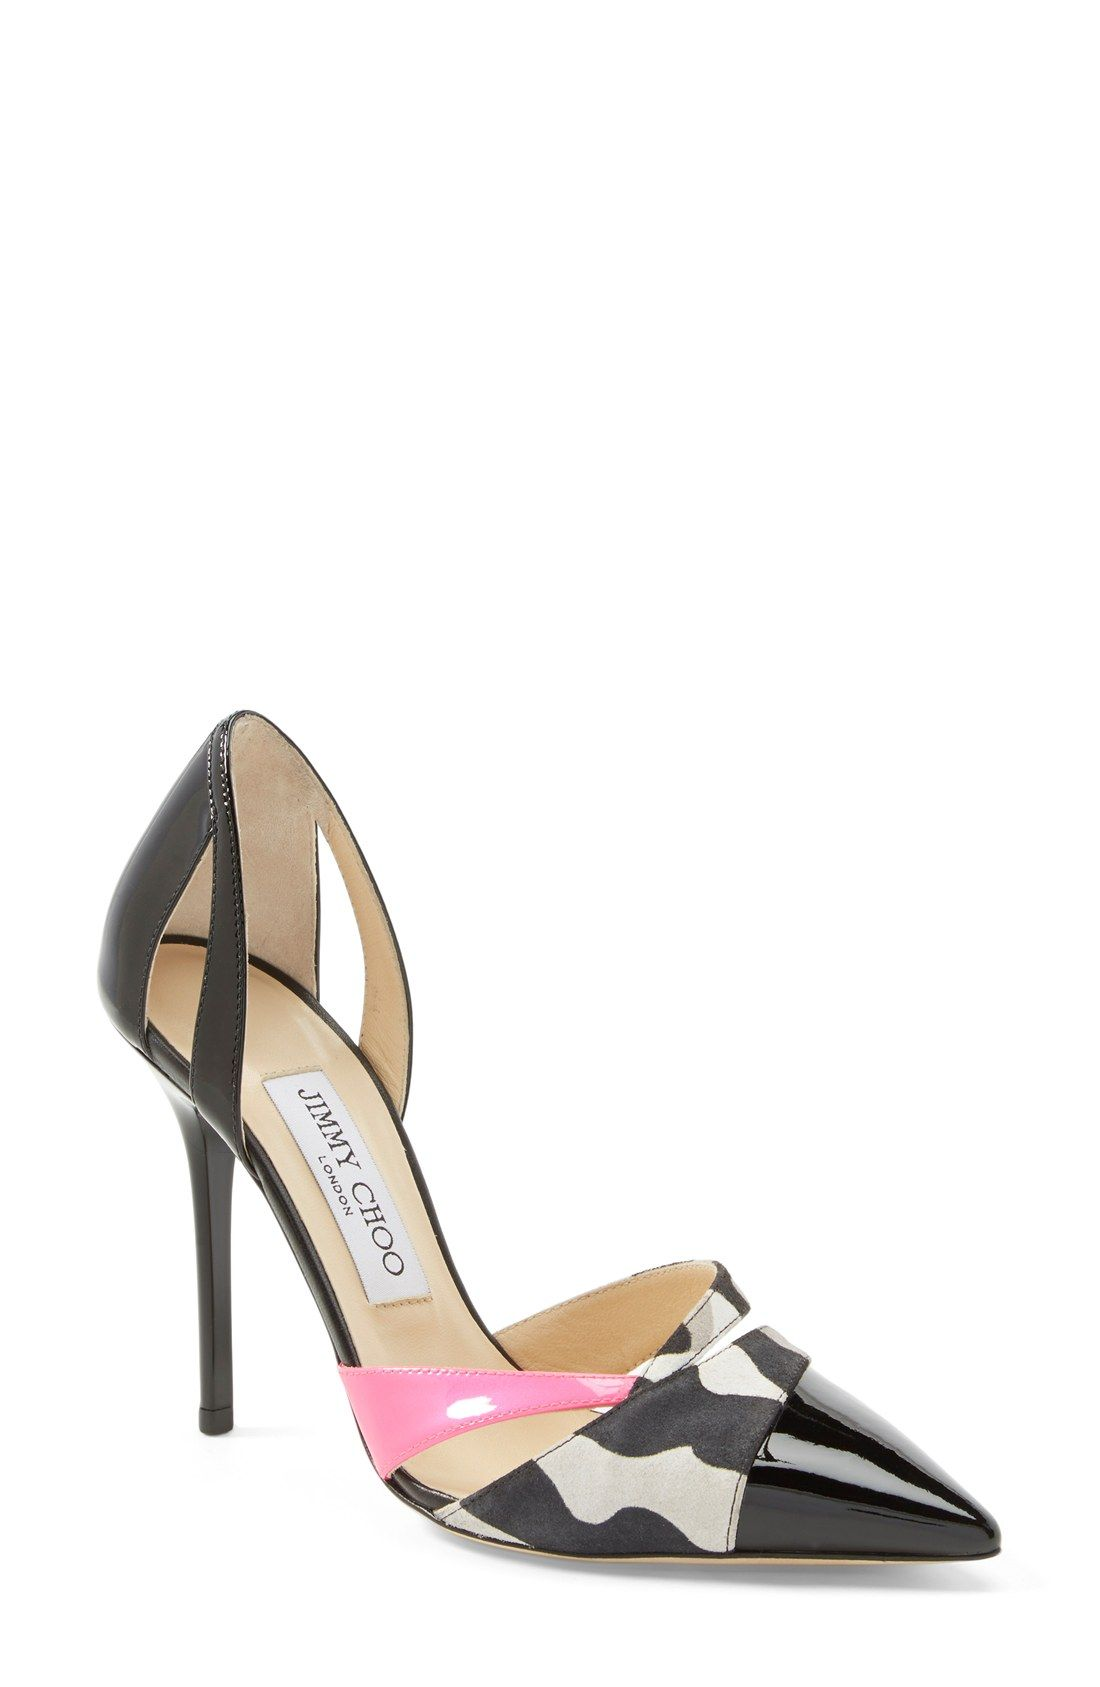 2063519440cf Head over heels for these artful Jimmy Choo pumps.